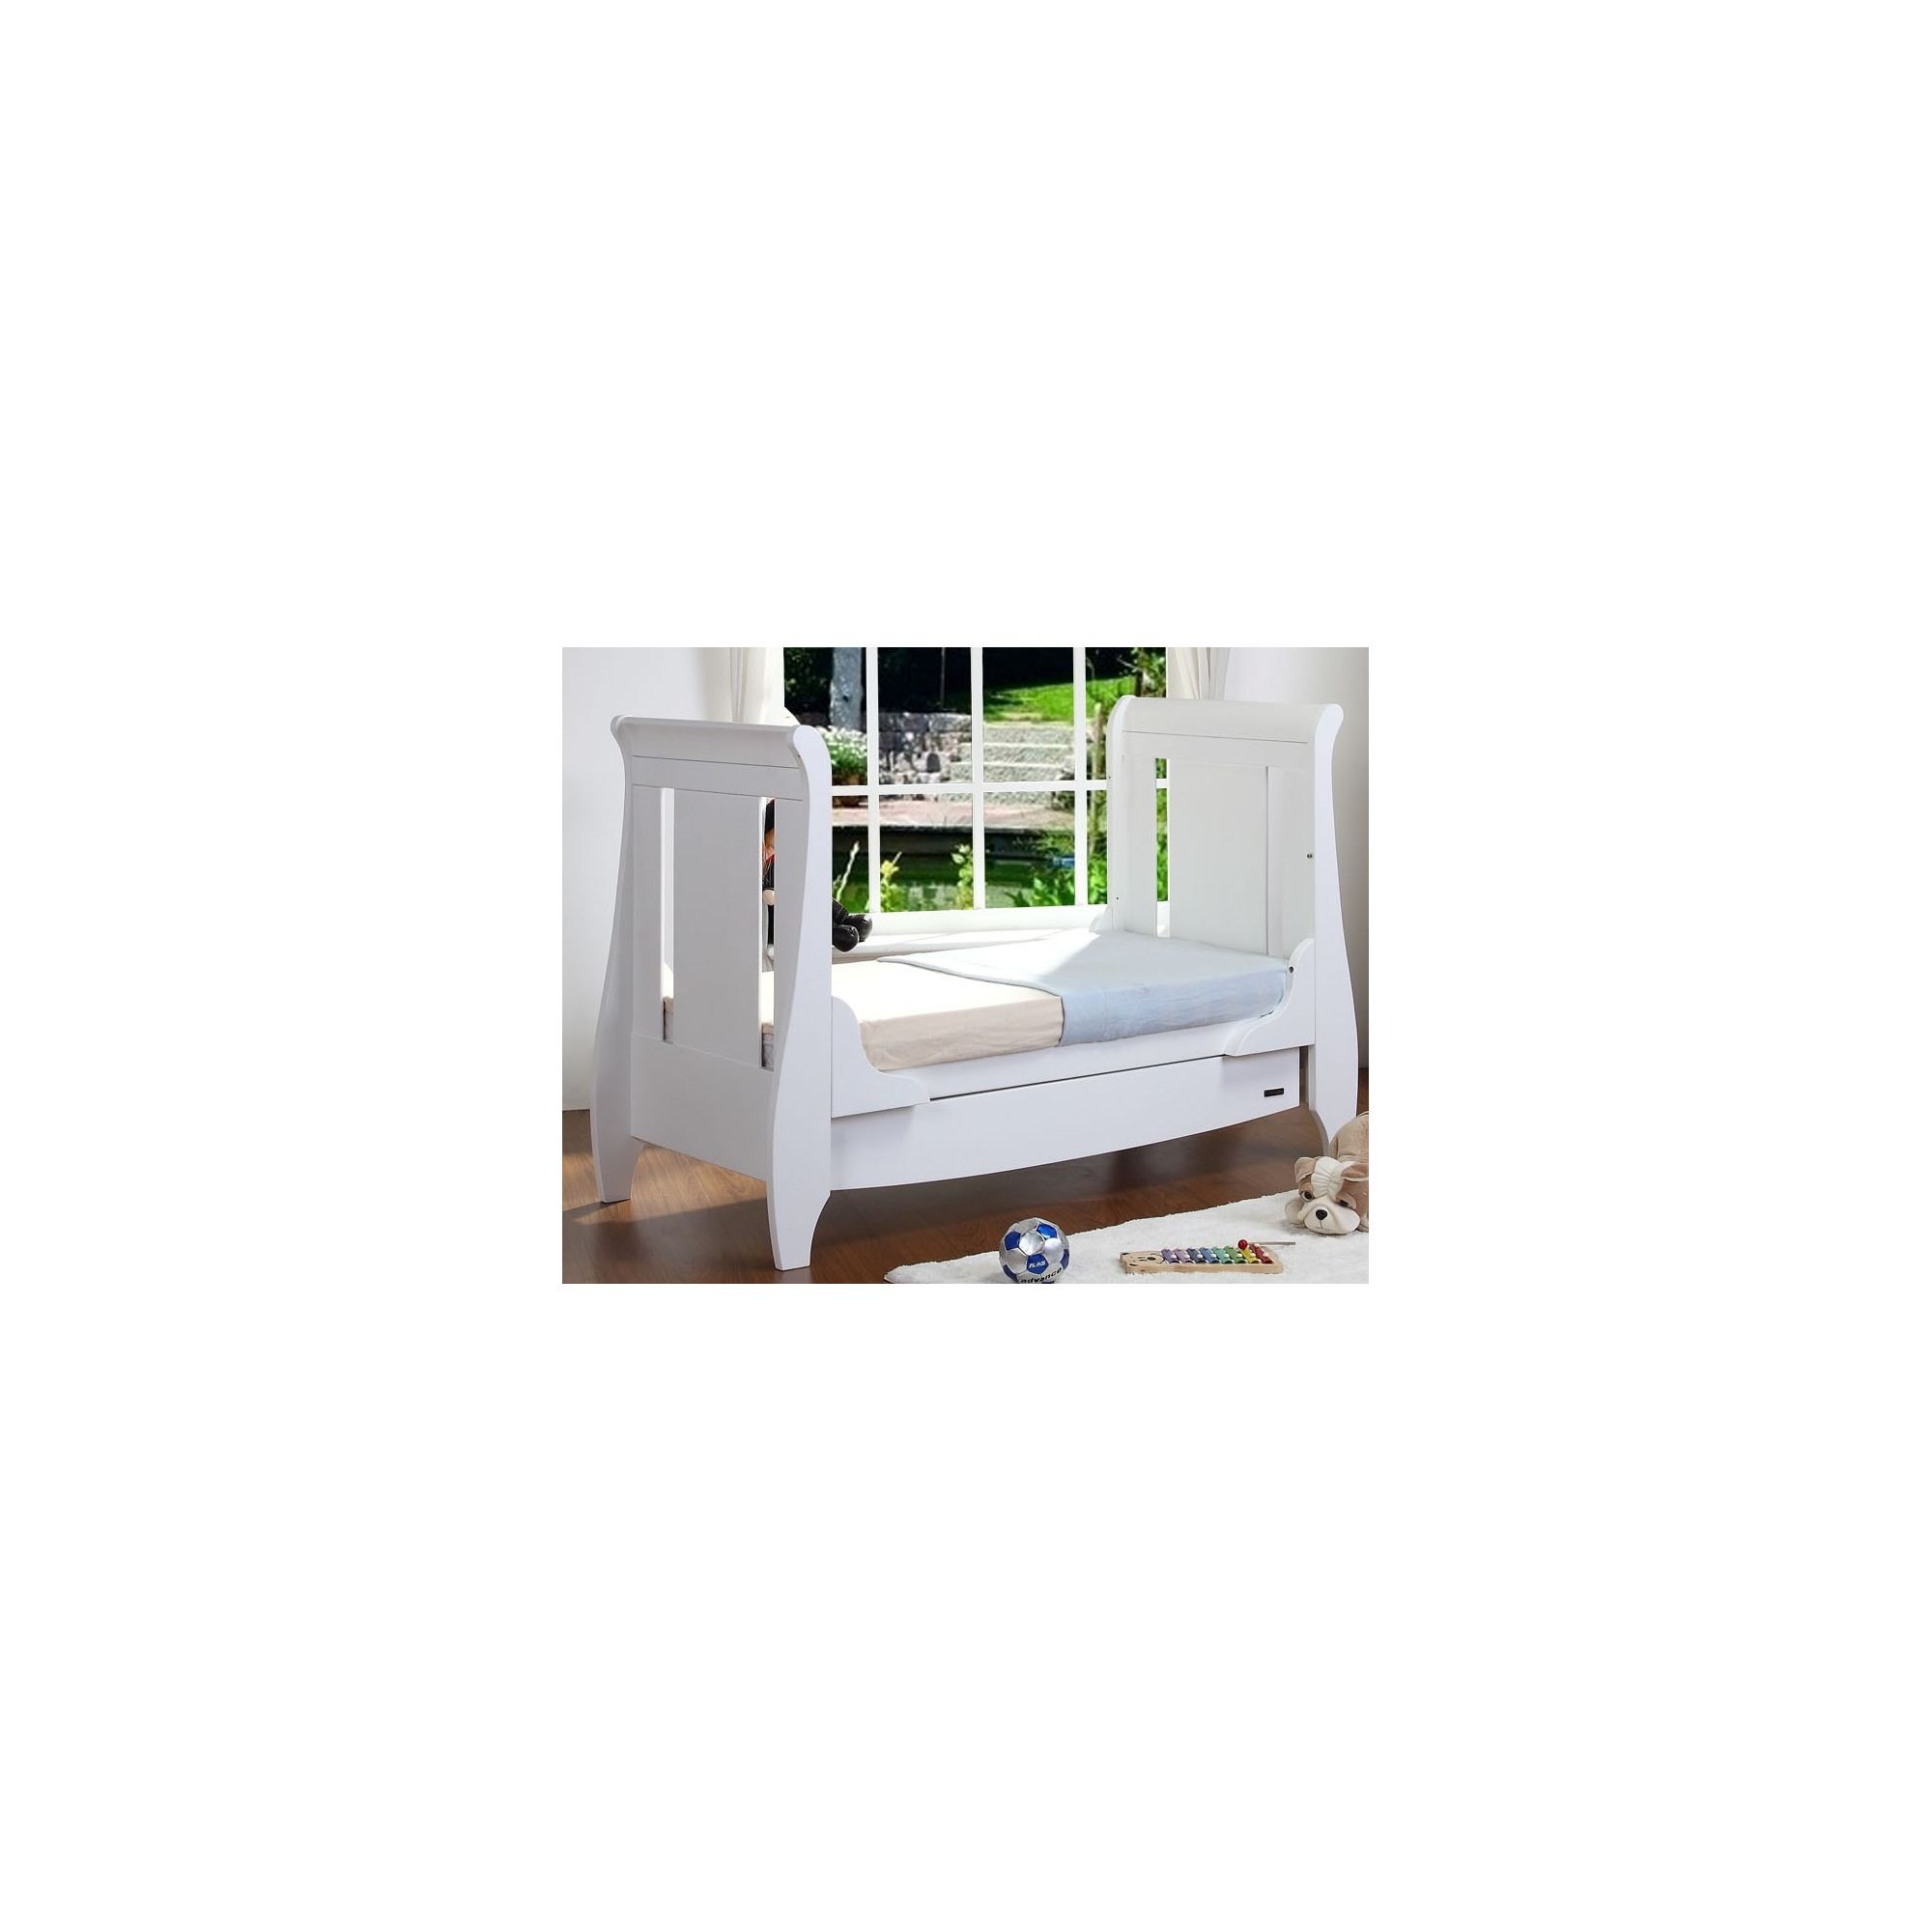 Tutti Bambini Lucas Sleigh Dropside Cot Bed with Drawer in White at Tesco Direct